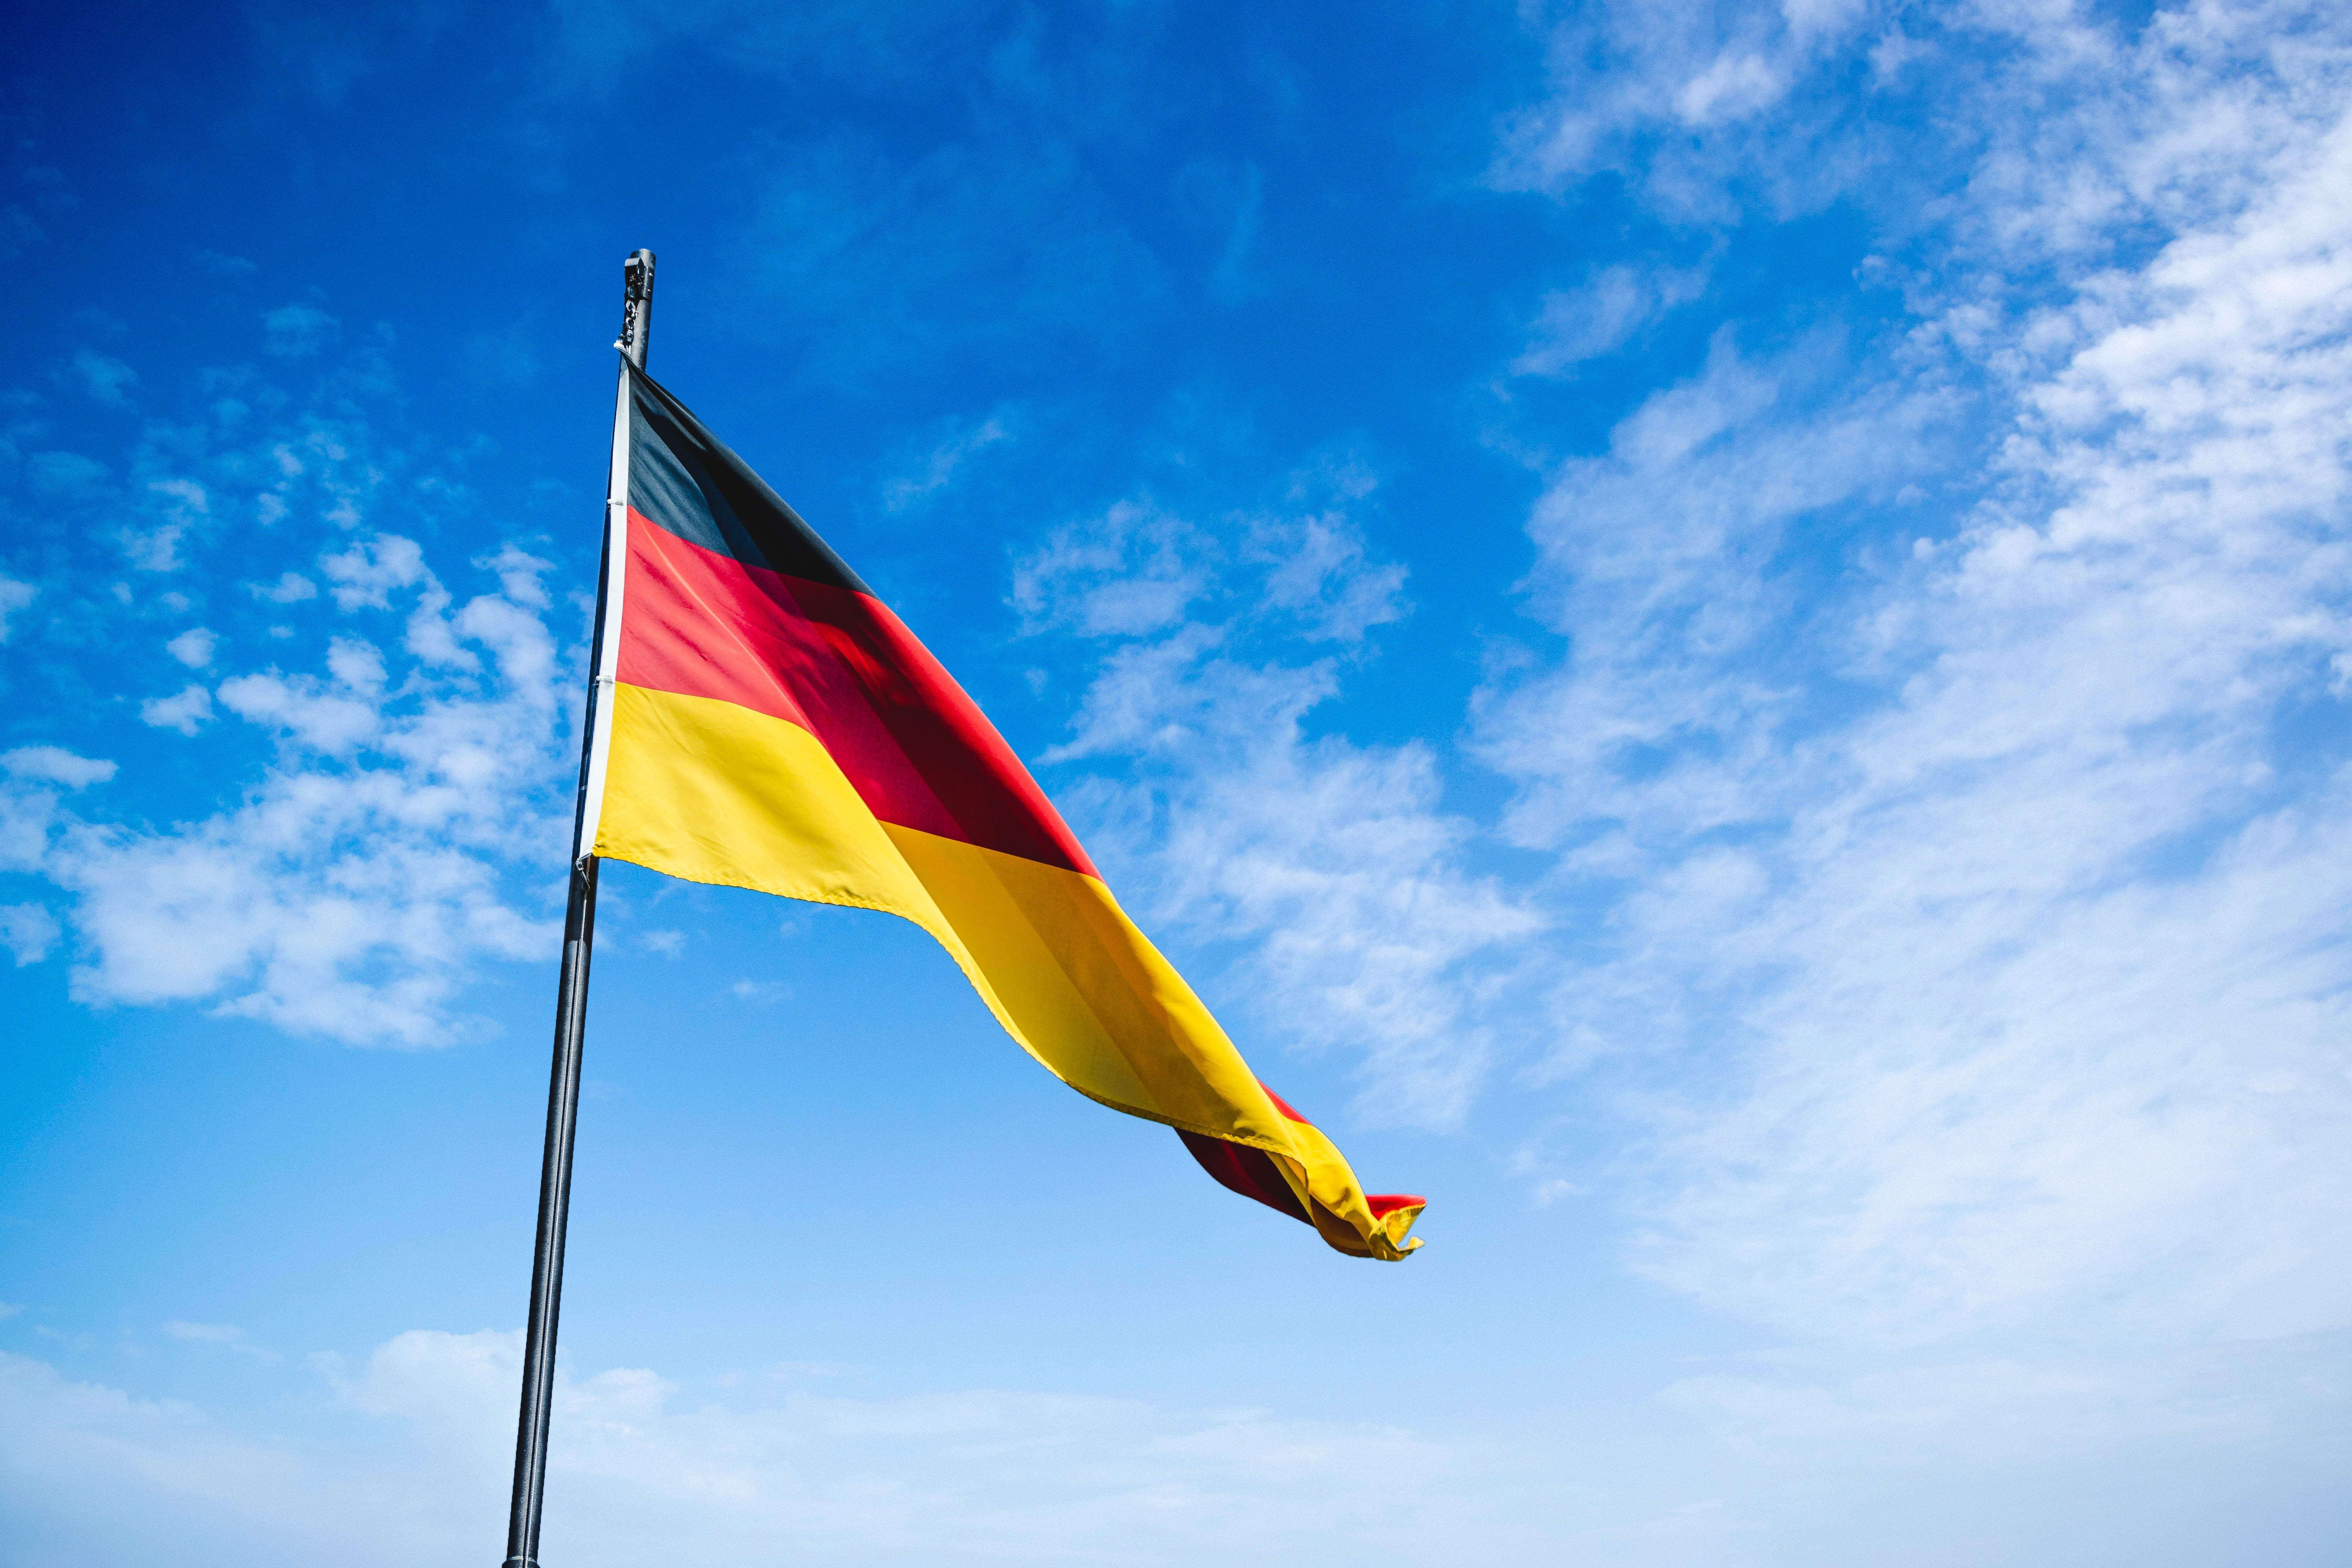 photo of the german flag with a blue sky and some clouds in the background